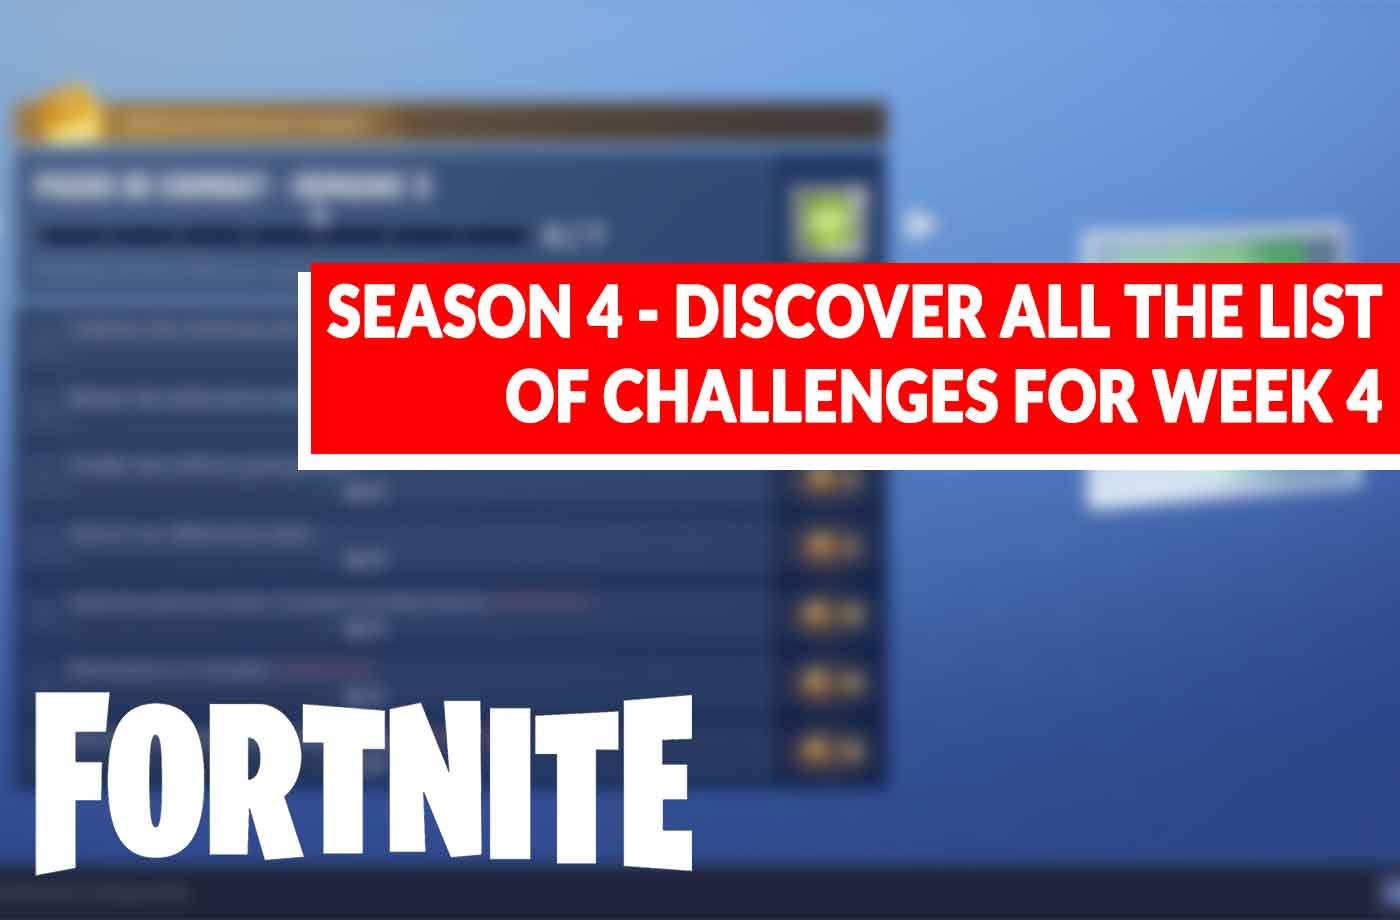 Fortnite Season 4 What Is The List Of Challenges Of The Week 4